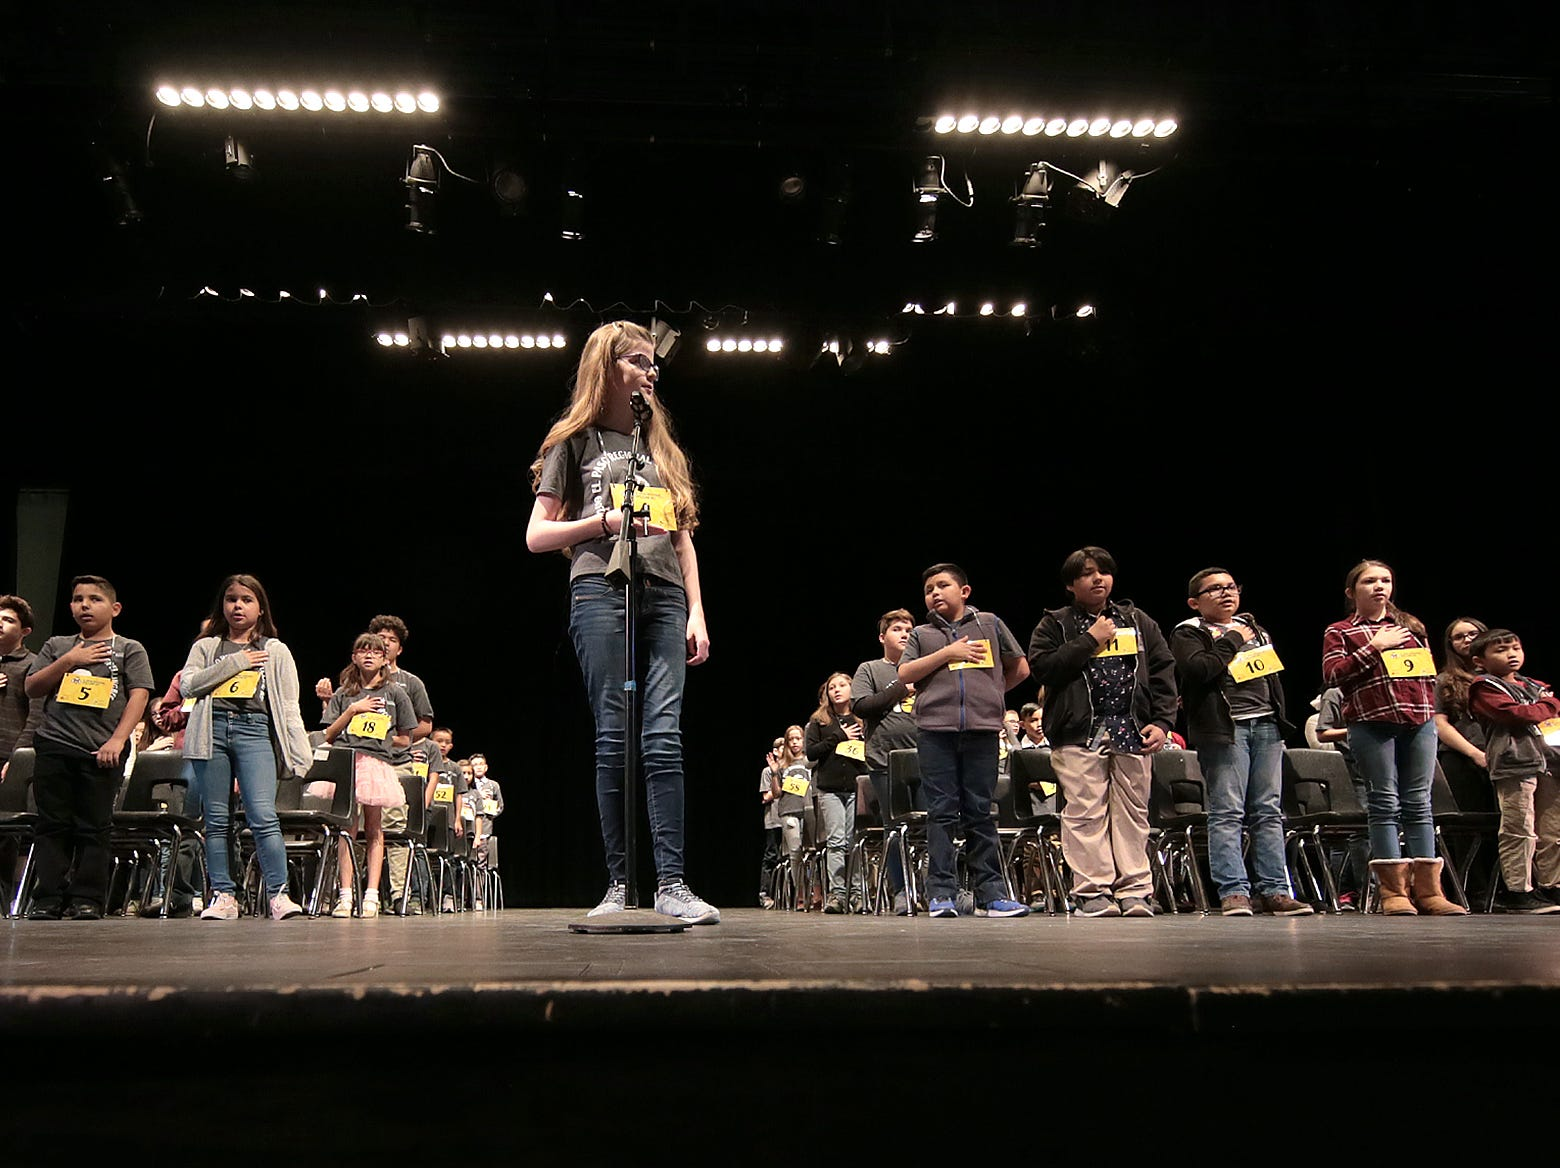 Alexia Whetten leads the auditorium in the Pledge of Allegiance at the 2019 El Paso Regional Spelling Bee on Friday, March 1, 2019, at Bowie High School.